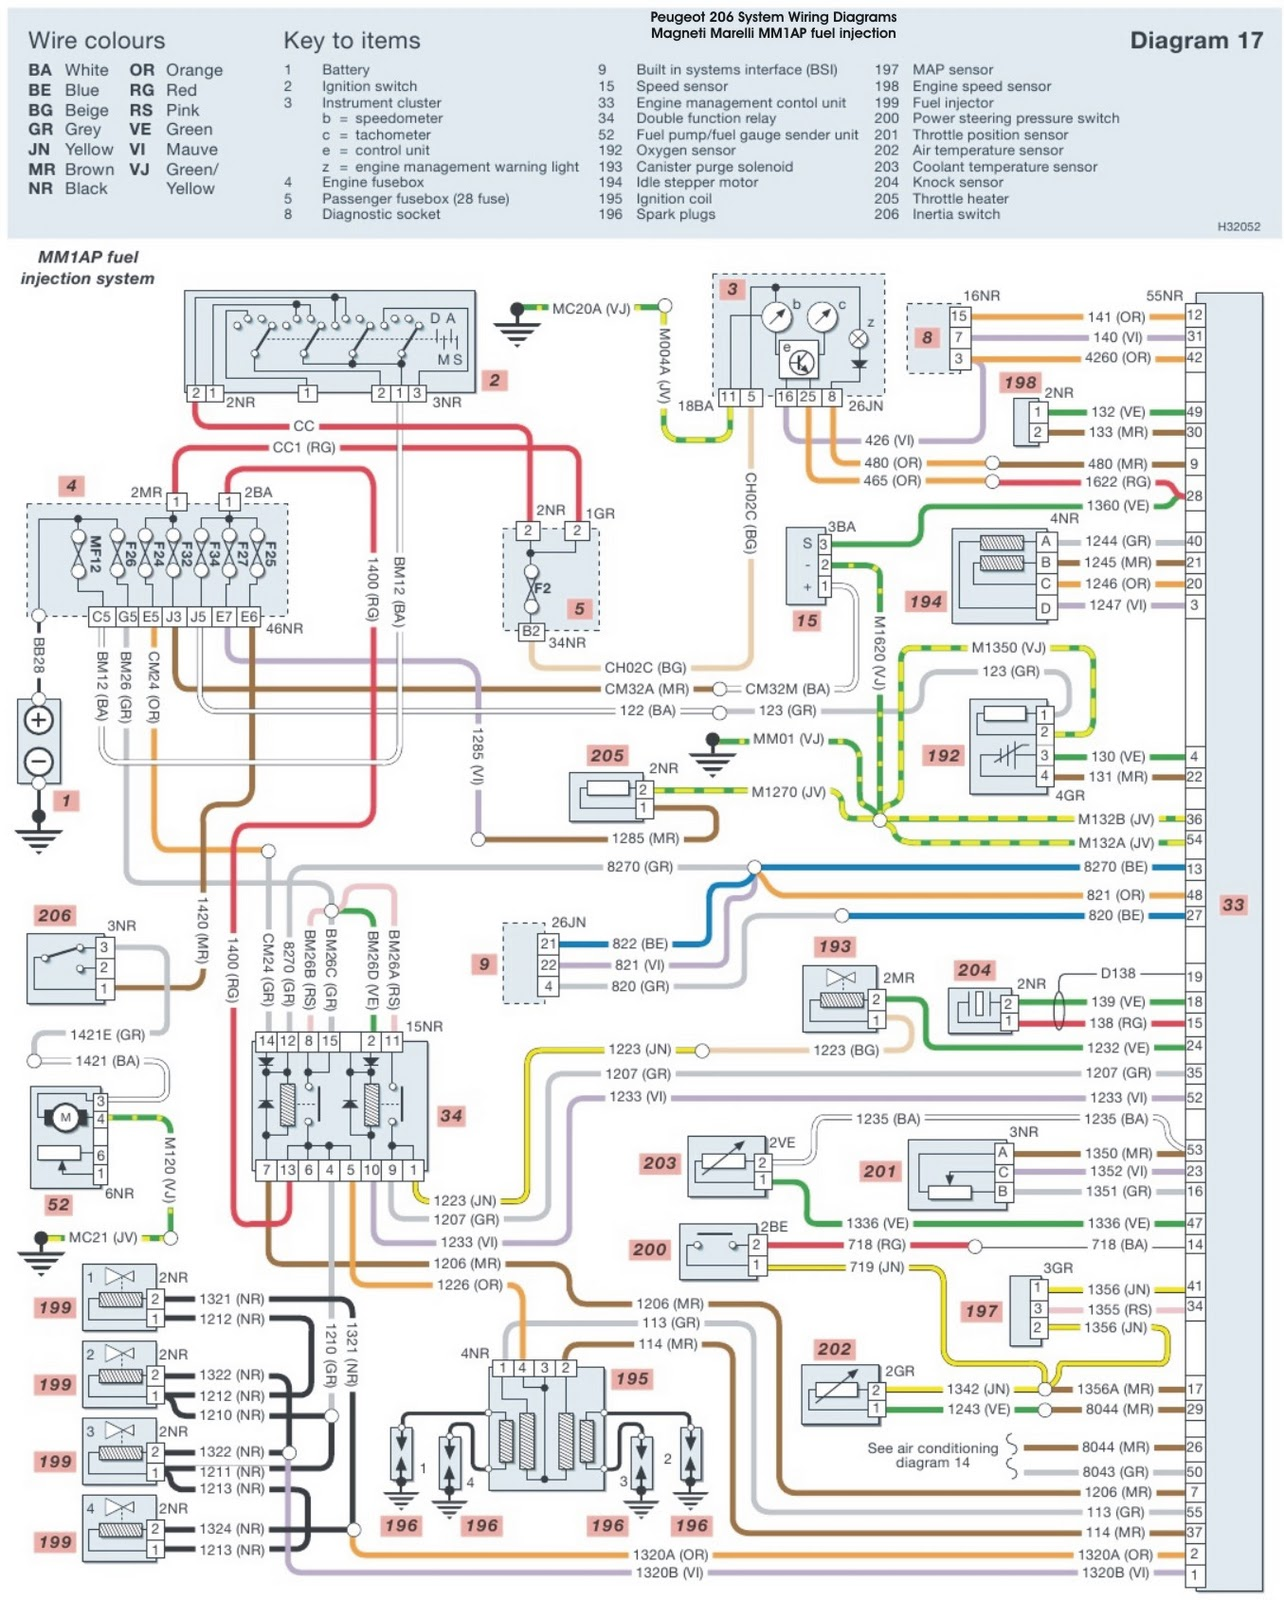 peugeot wiring diagram peugeot wiring diagrams peugeot wiring diagram 206 peugeot automotive wiring diagram